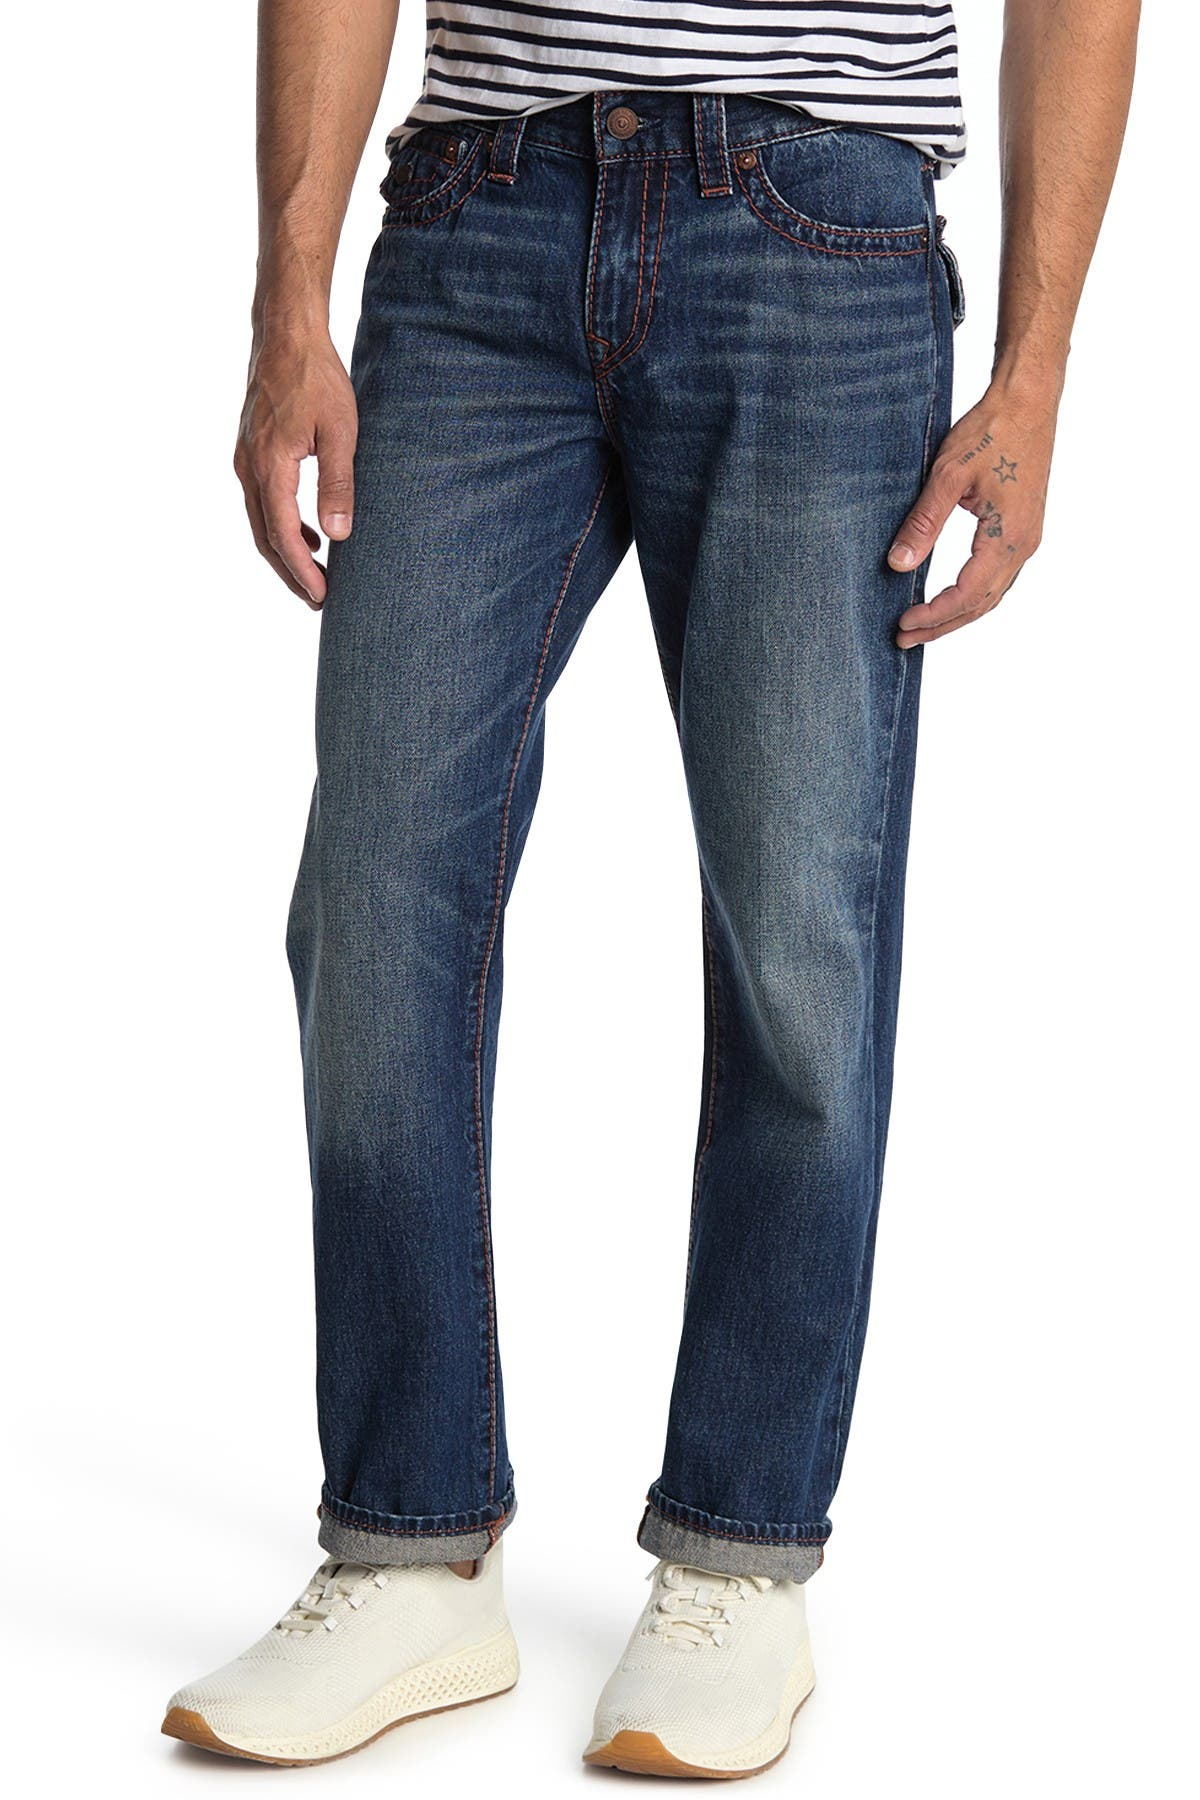 Image of True Religion Ricky Flap Big Straight Leg Jeans